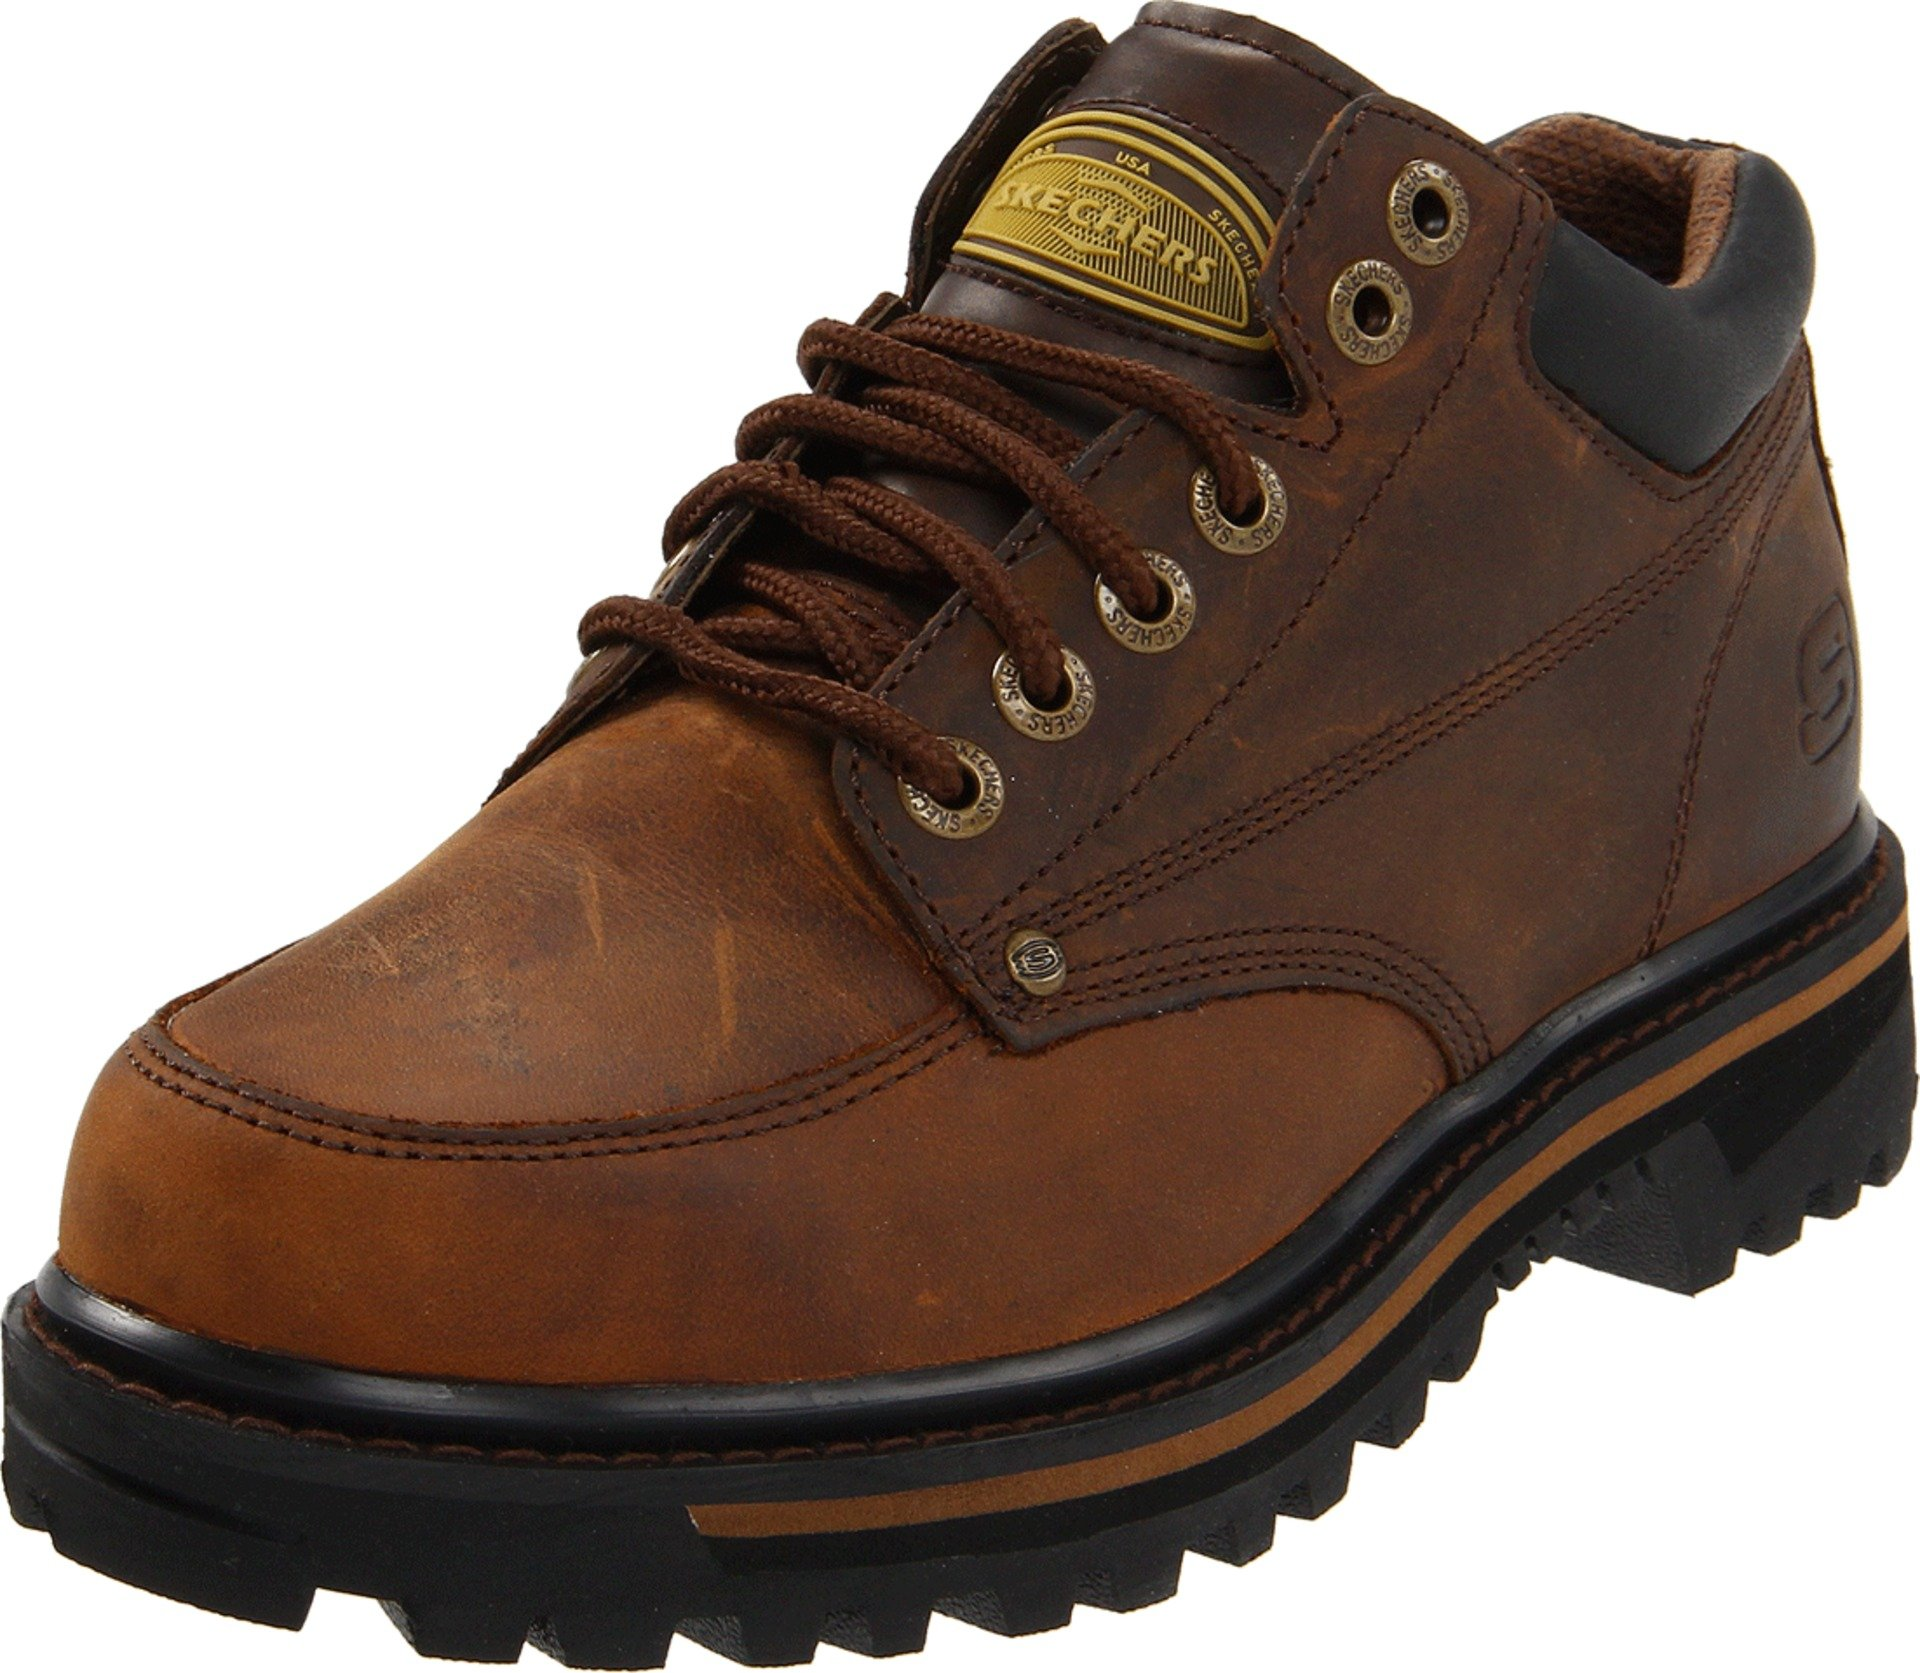 Skechers USA Men's Mariner Utility Boot,Dark Brown,10.5 EE - Wide by Skechers